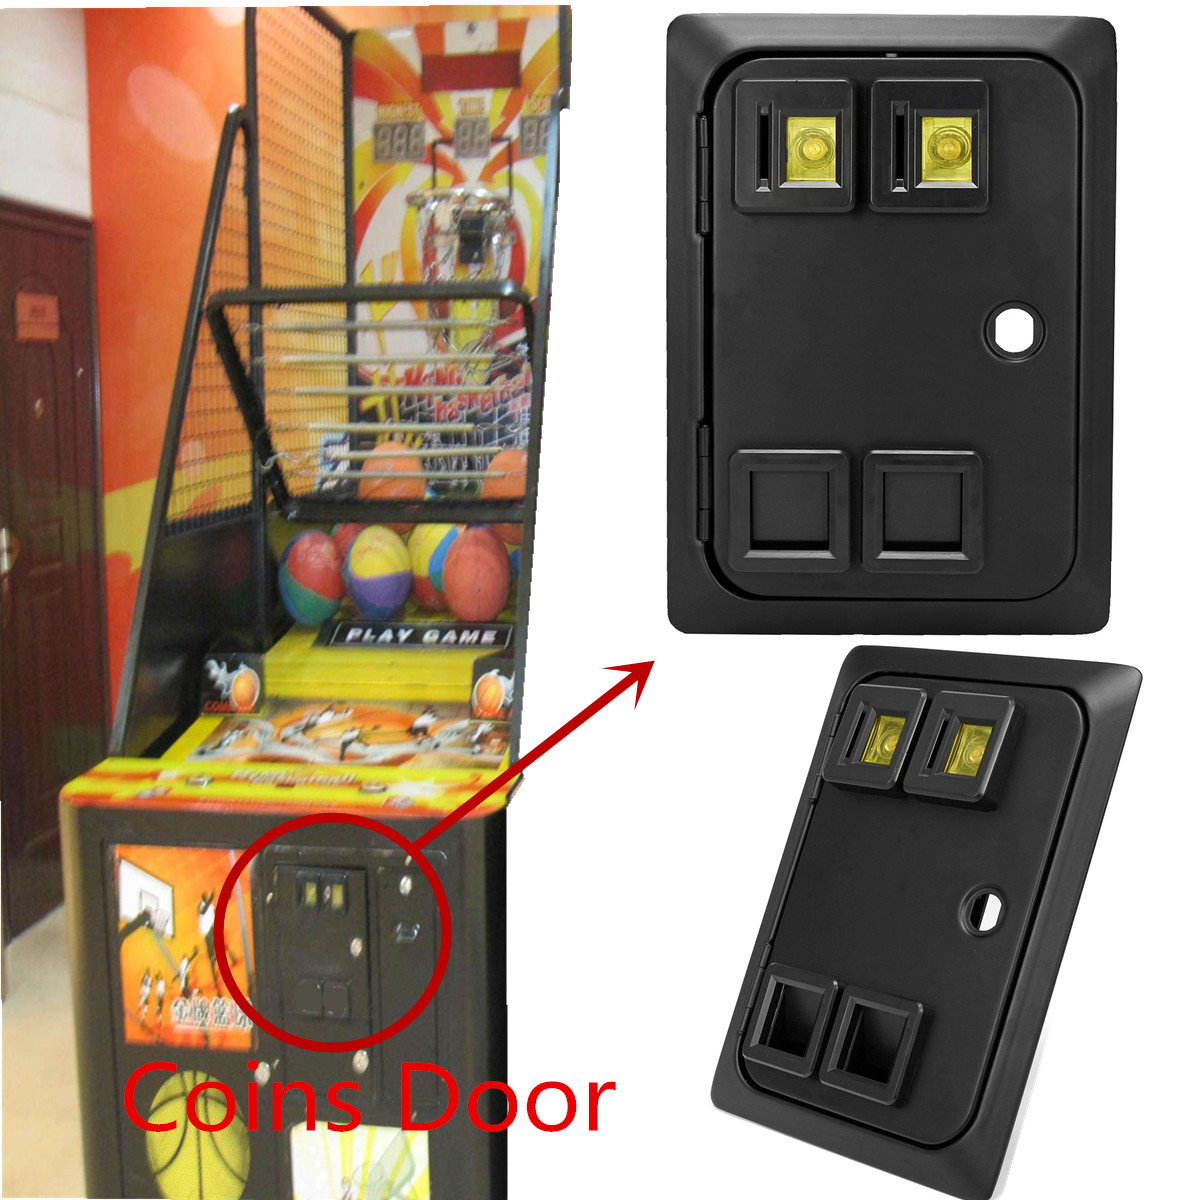 Arcade Or Pinball Game Machine Two Entry Coin Door Wells Gardner Style Coins Door Gate With Mech Coin Operated Game Console Part(China)